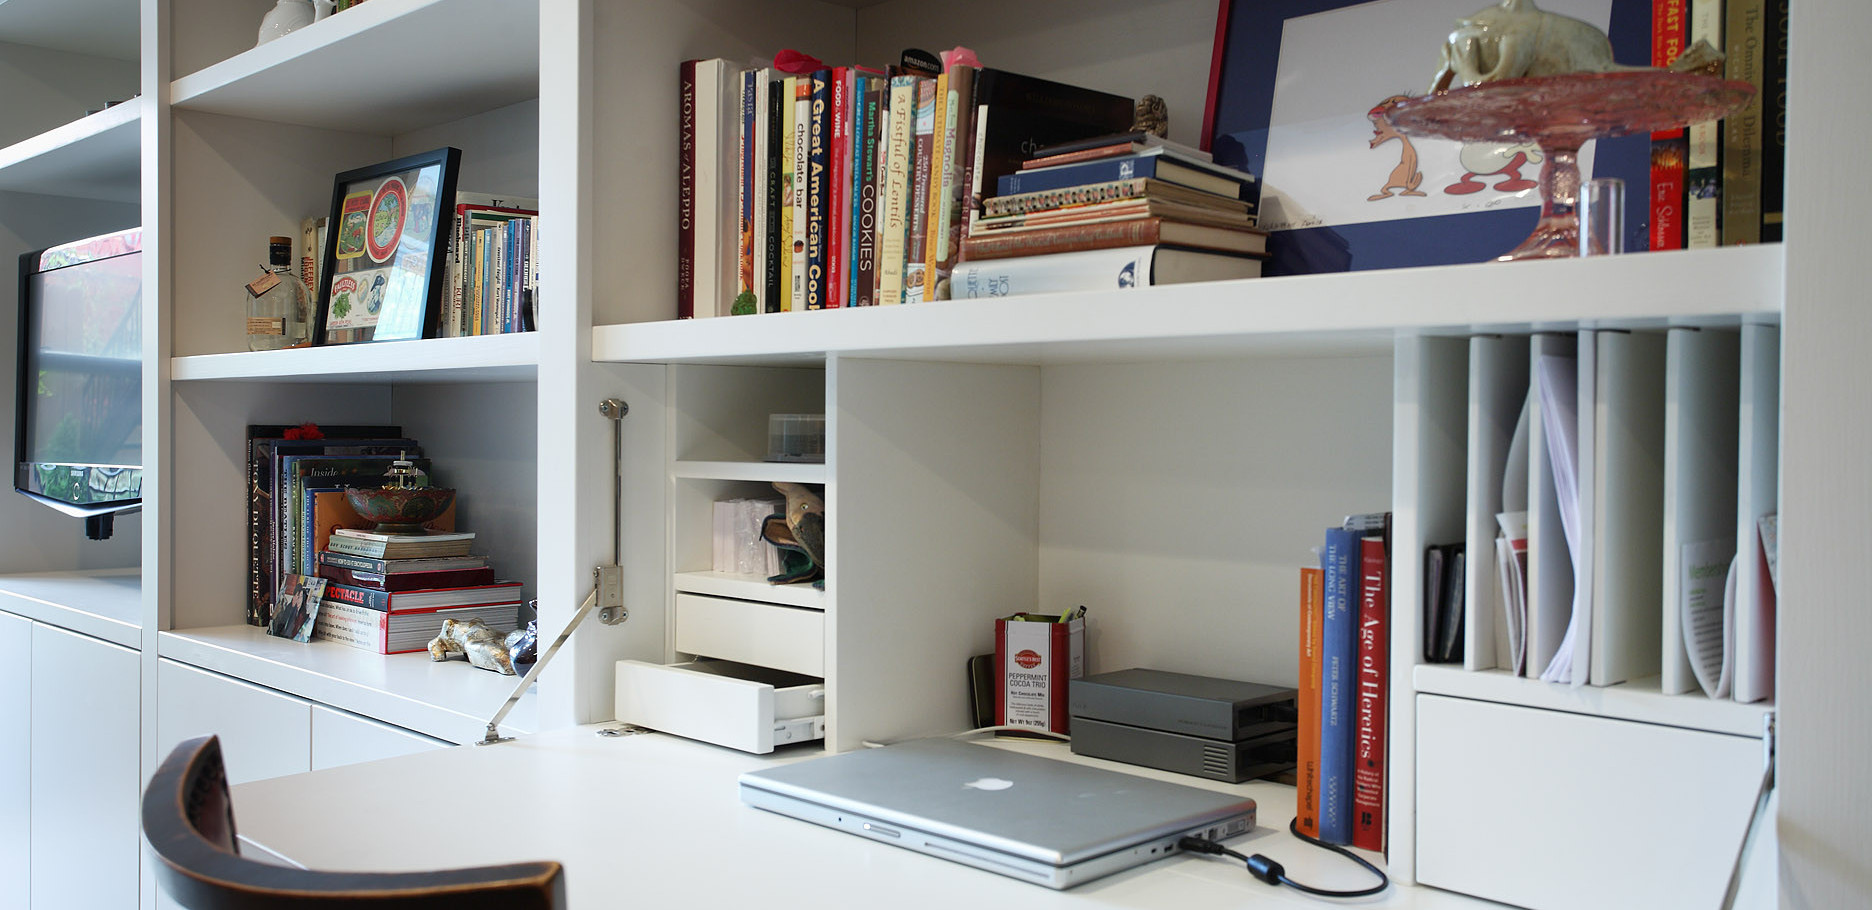 The desk flap folds down to reveal a custom office space that can be neatly tucked away behind it's door when not in use